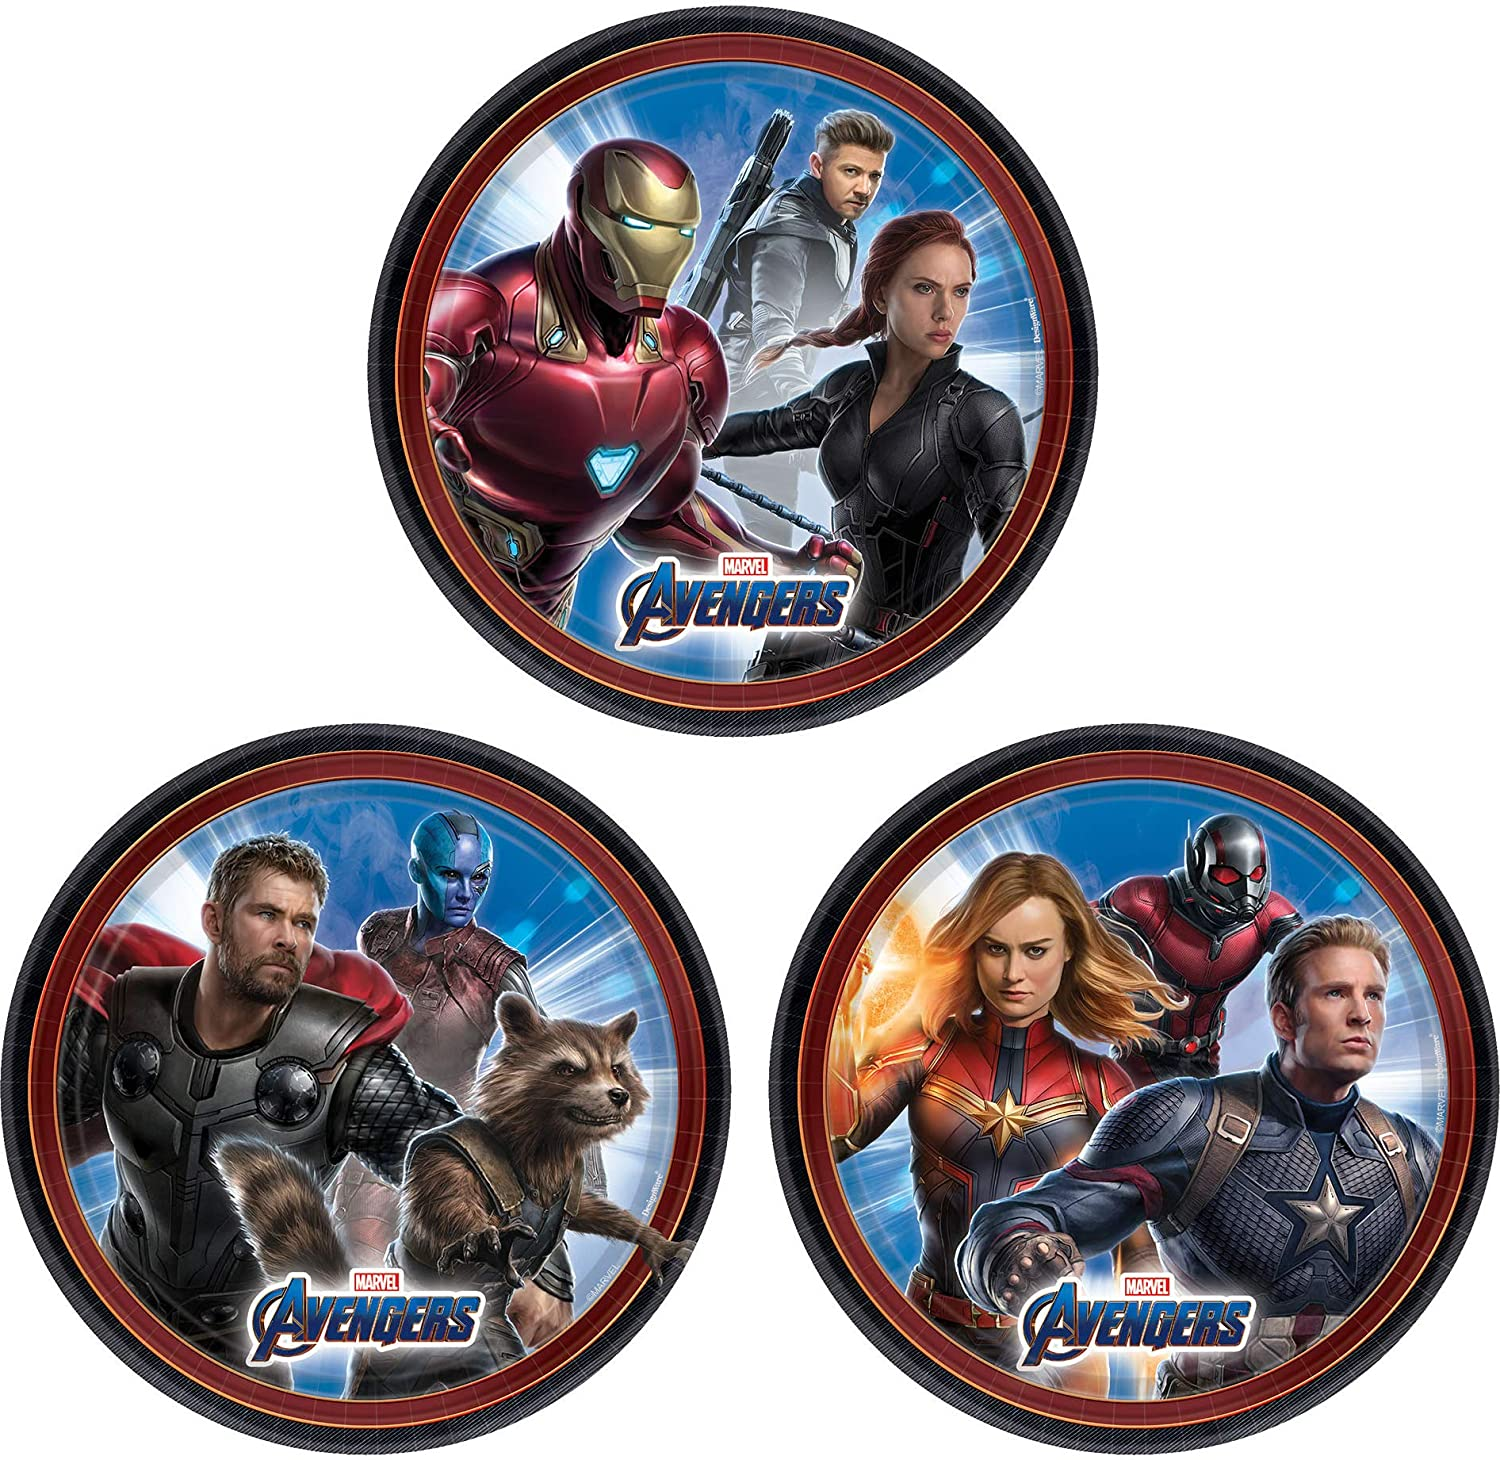 Amscan Marvel Black Panther Square Plates 9 Multicolor 9 551957 Party Favor One Size